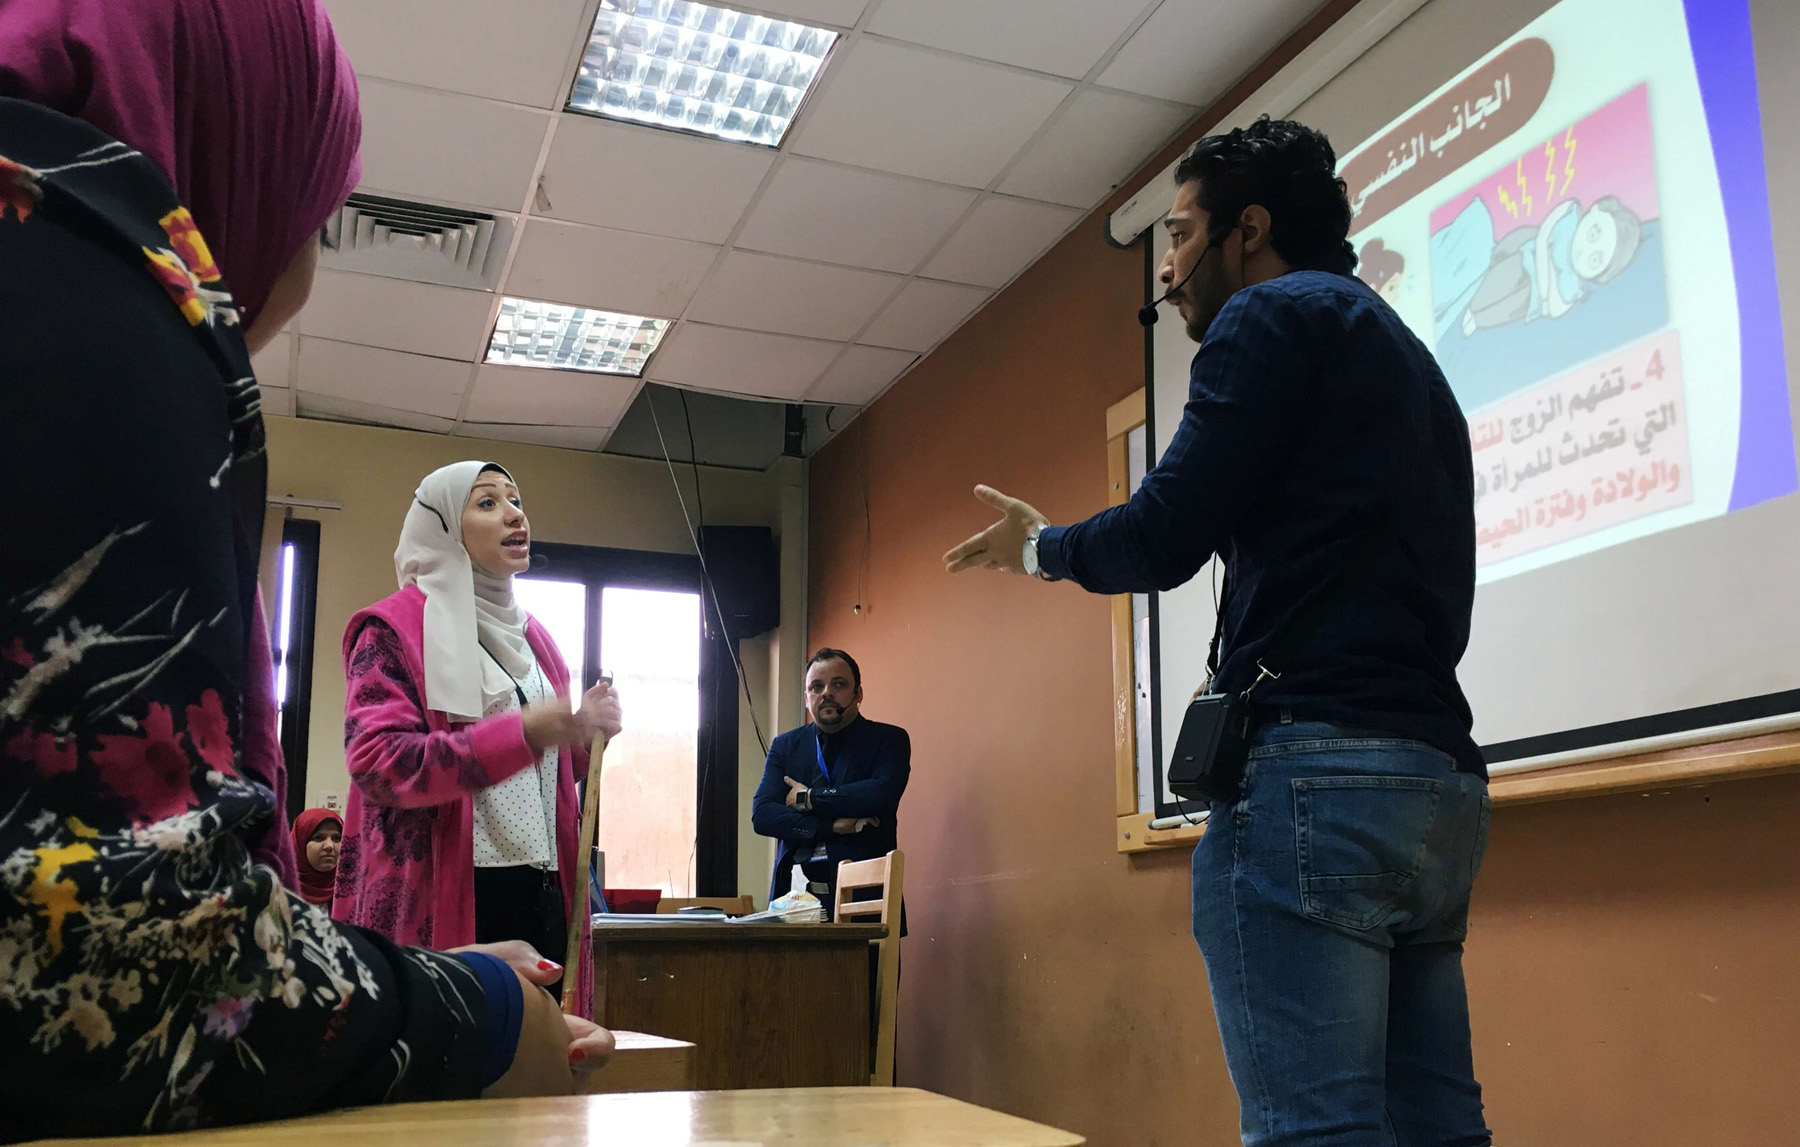 Two students perform a skit at Cairo University about a married couple having an argument as part of a new government project aimed at curbing Egypt's divorce rate. (Reuters)